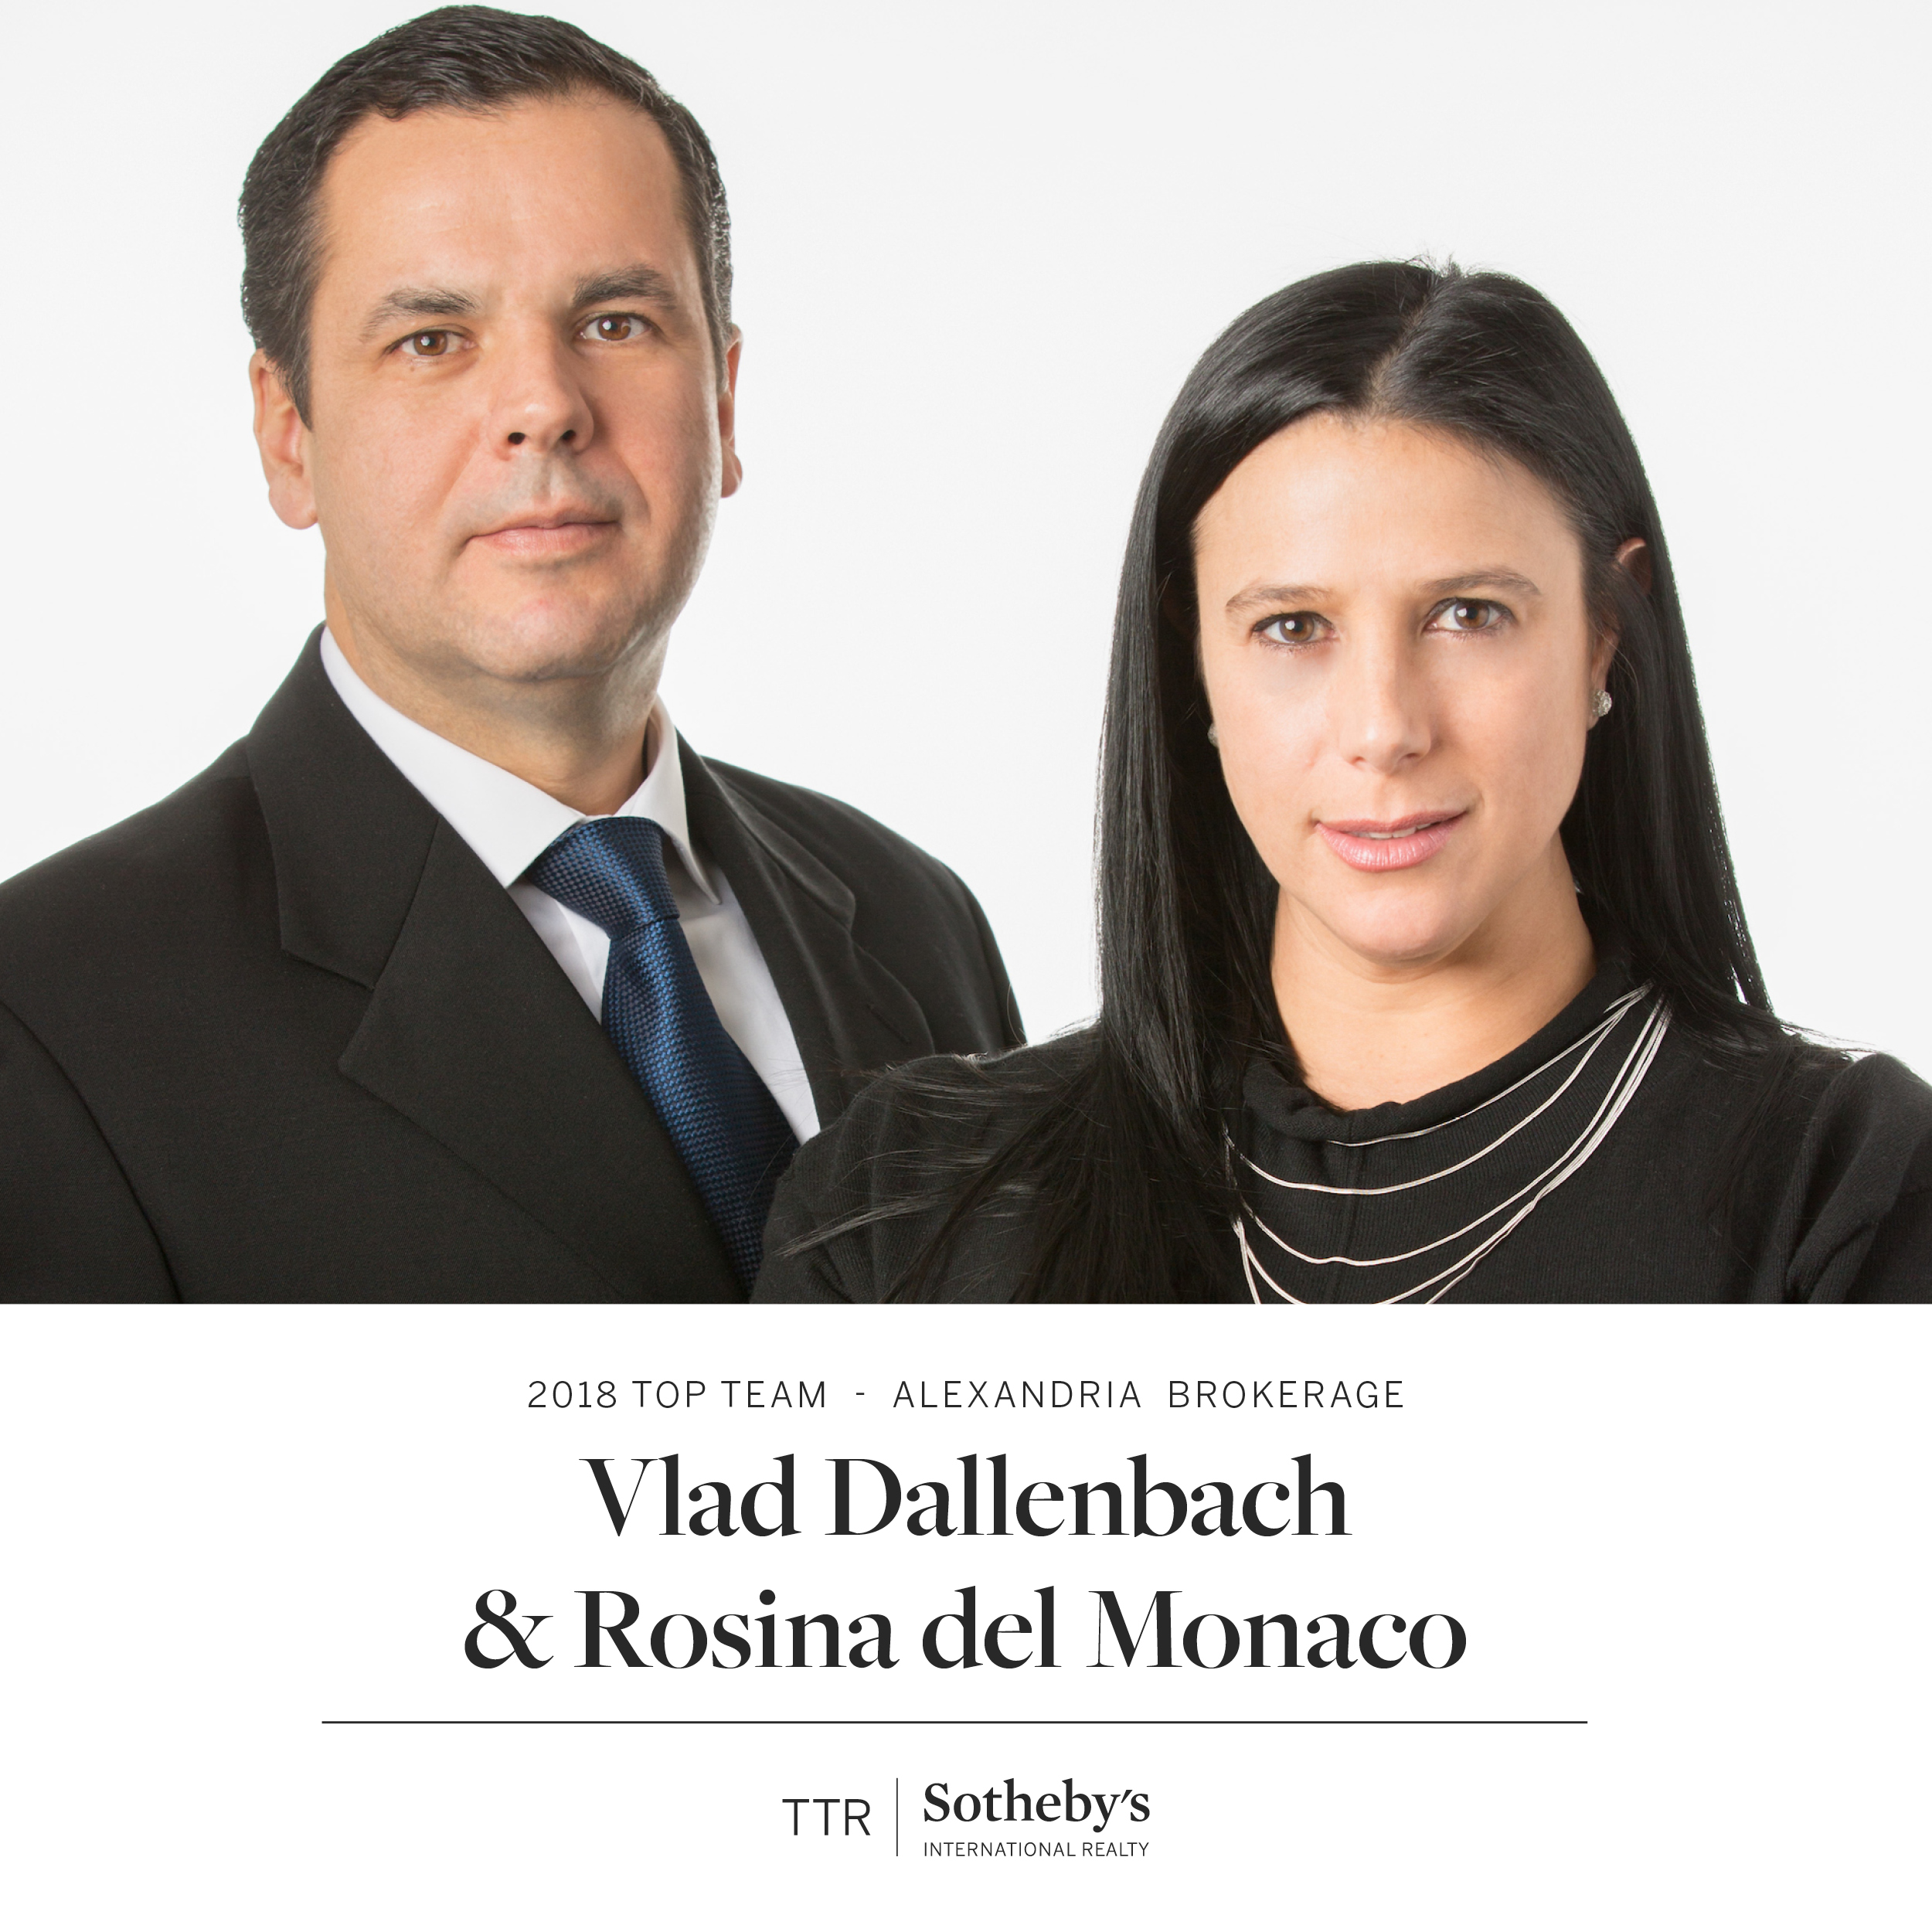 2018 Top Team - Rosina del Monaco + Vlad Dallenbach - TTR Sotheby's International Realty